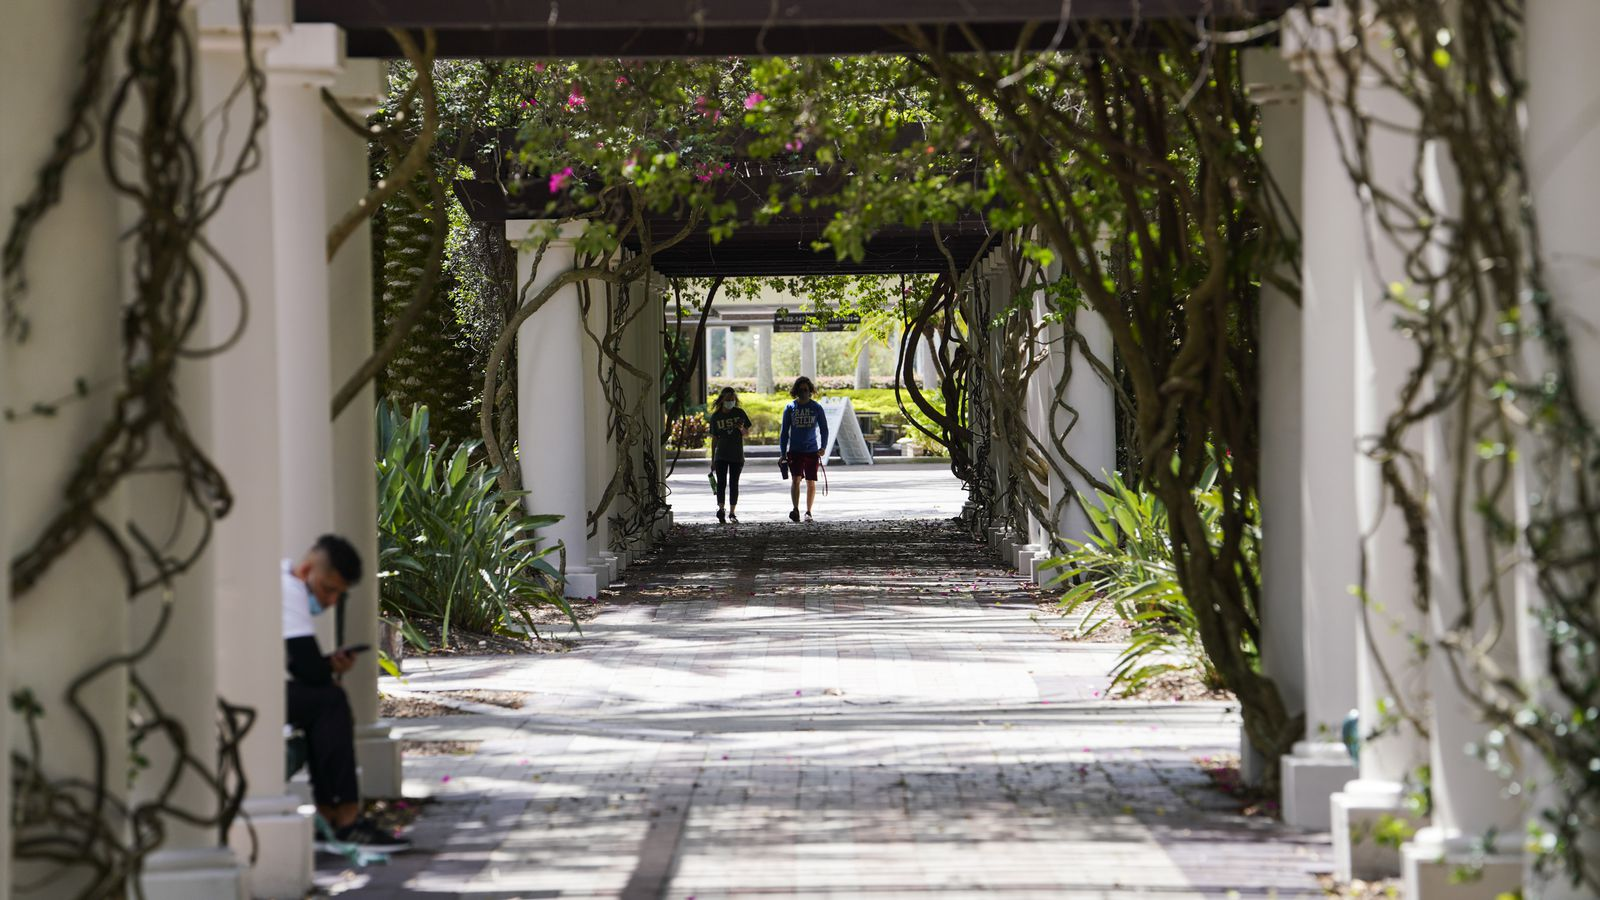 Should Florida raise tuition at state universities? It's being discussed.